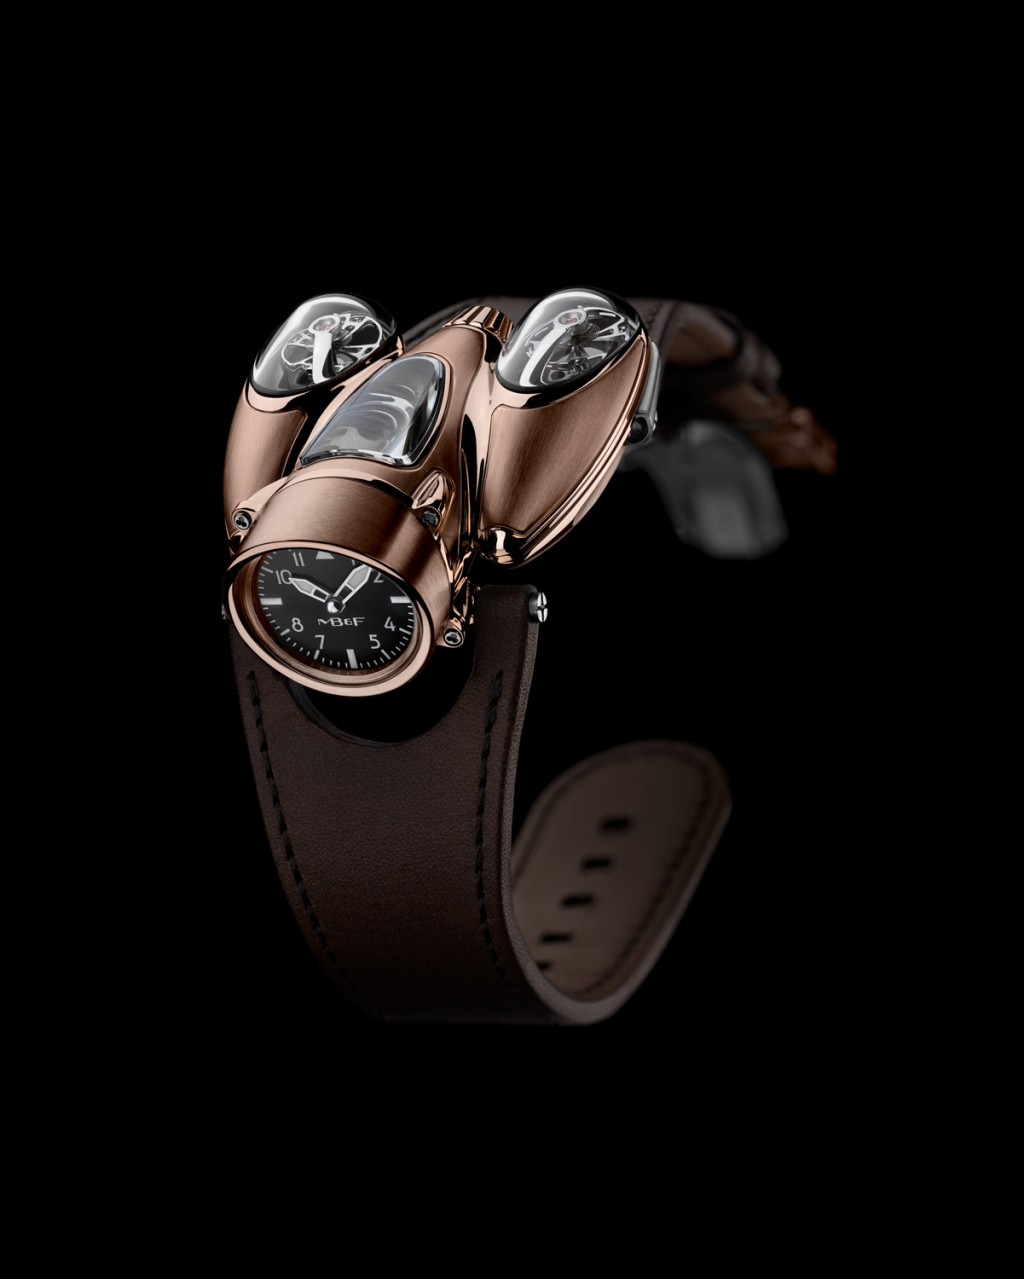 Mb&f Hm9 Air Edition